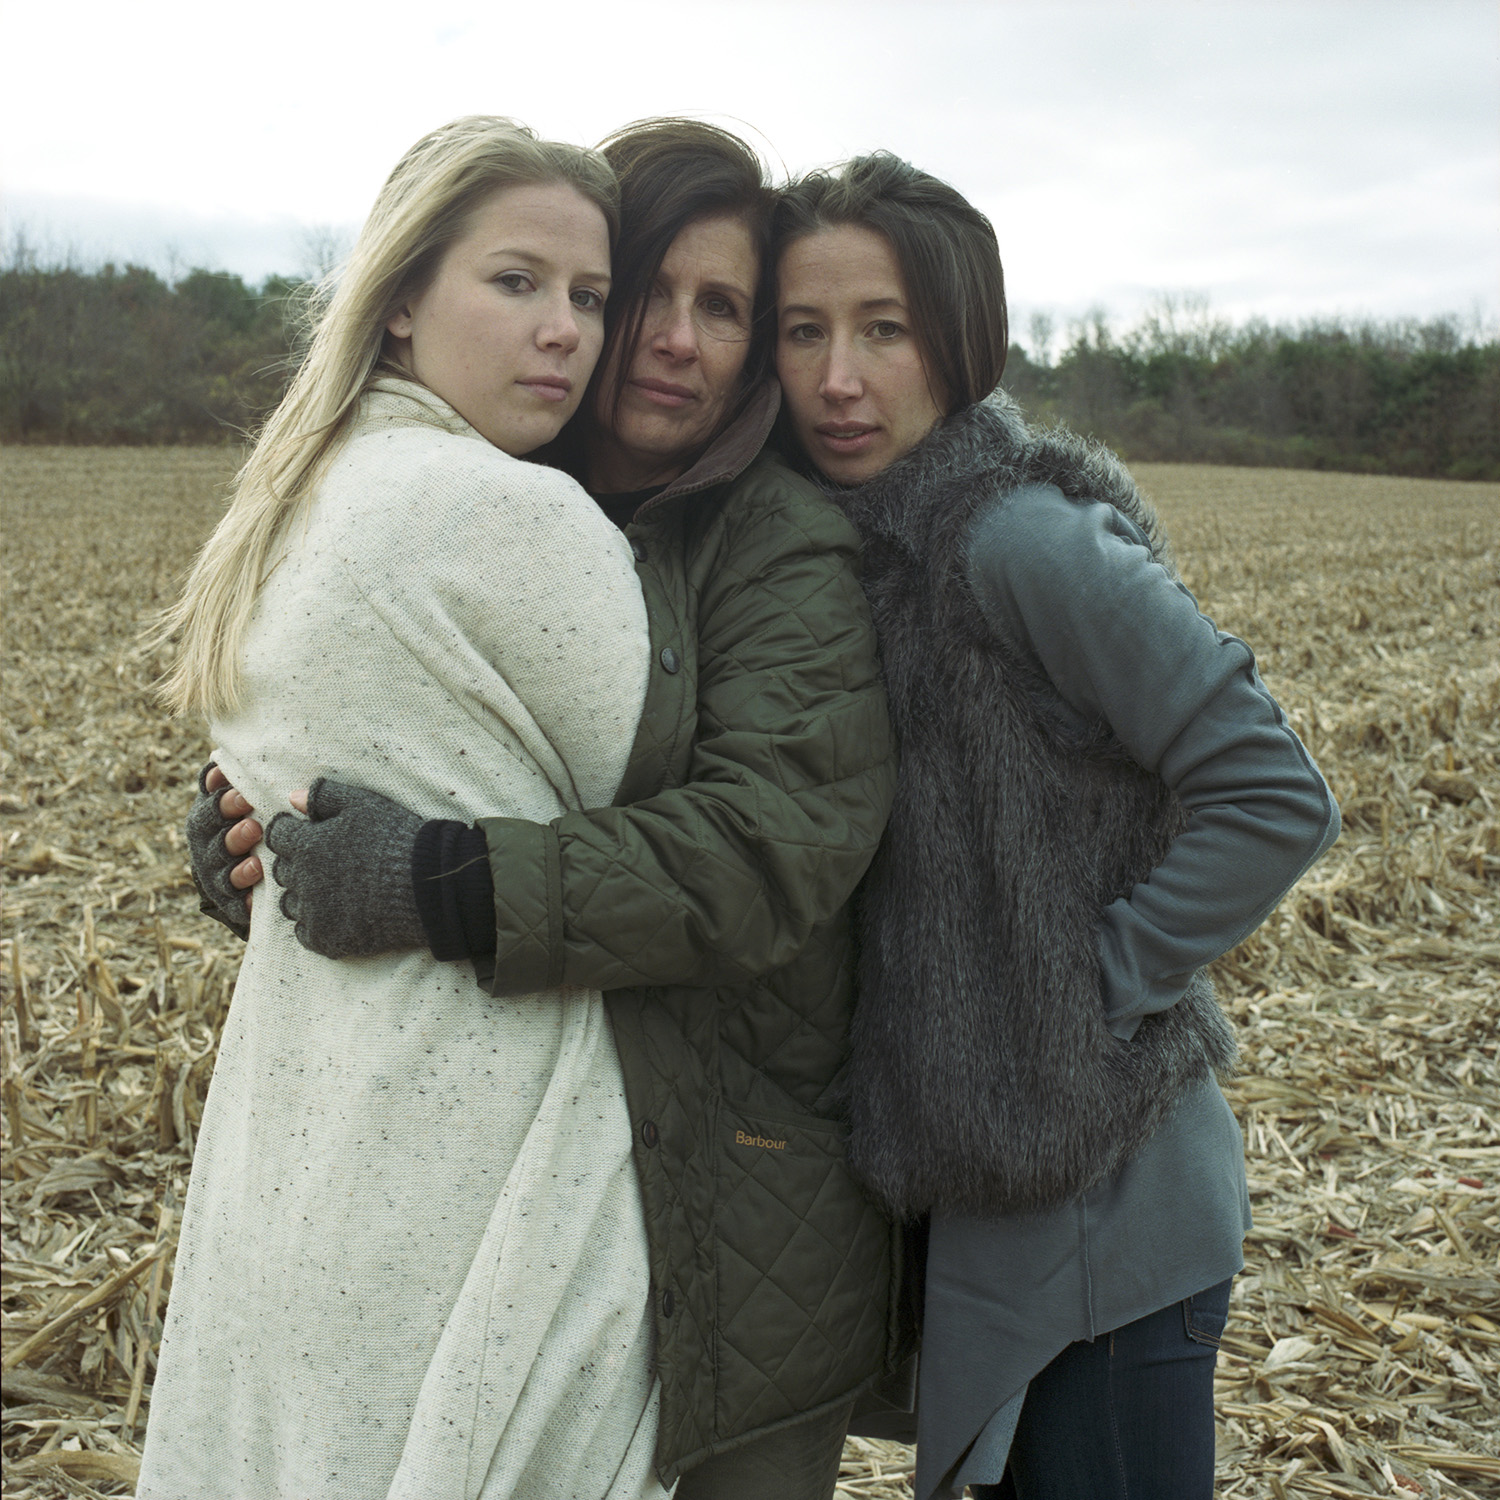 Claire, Mary, and Emma